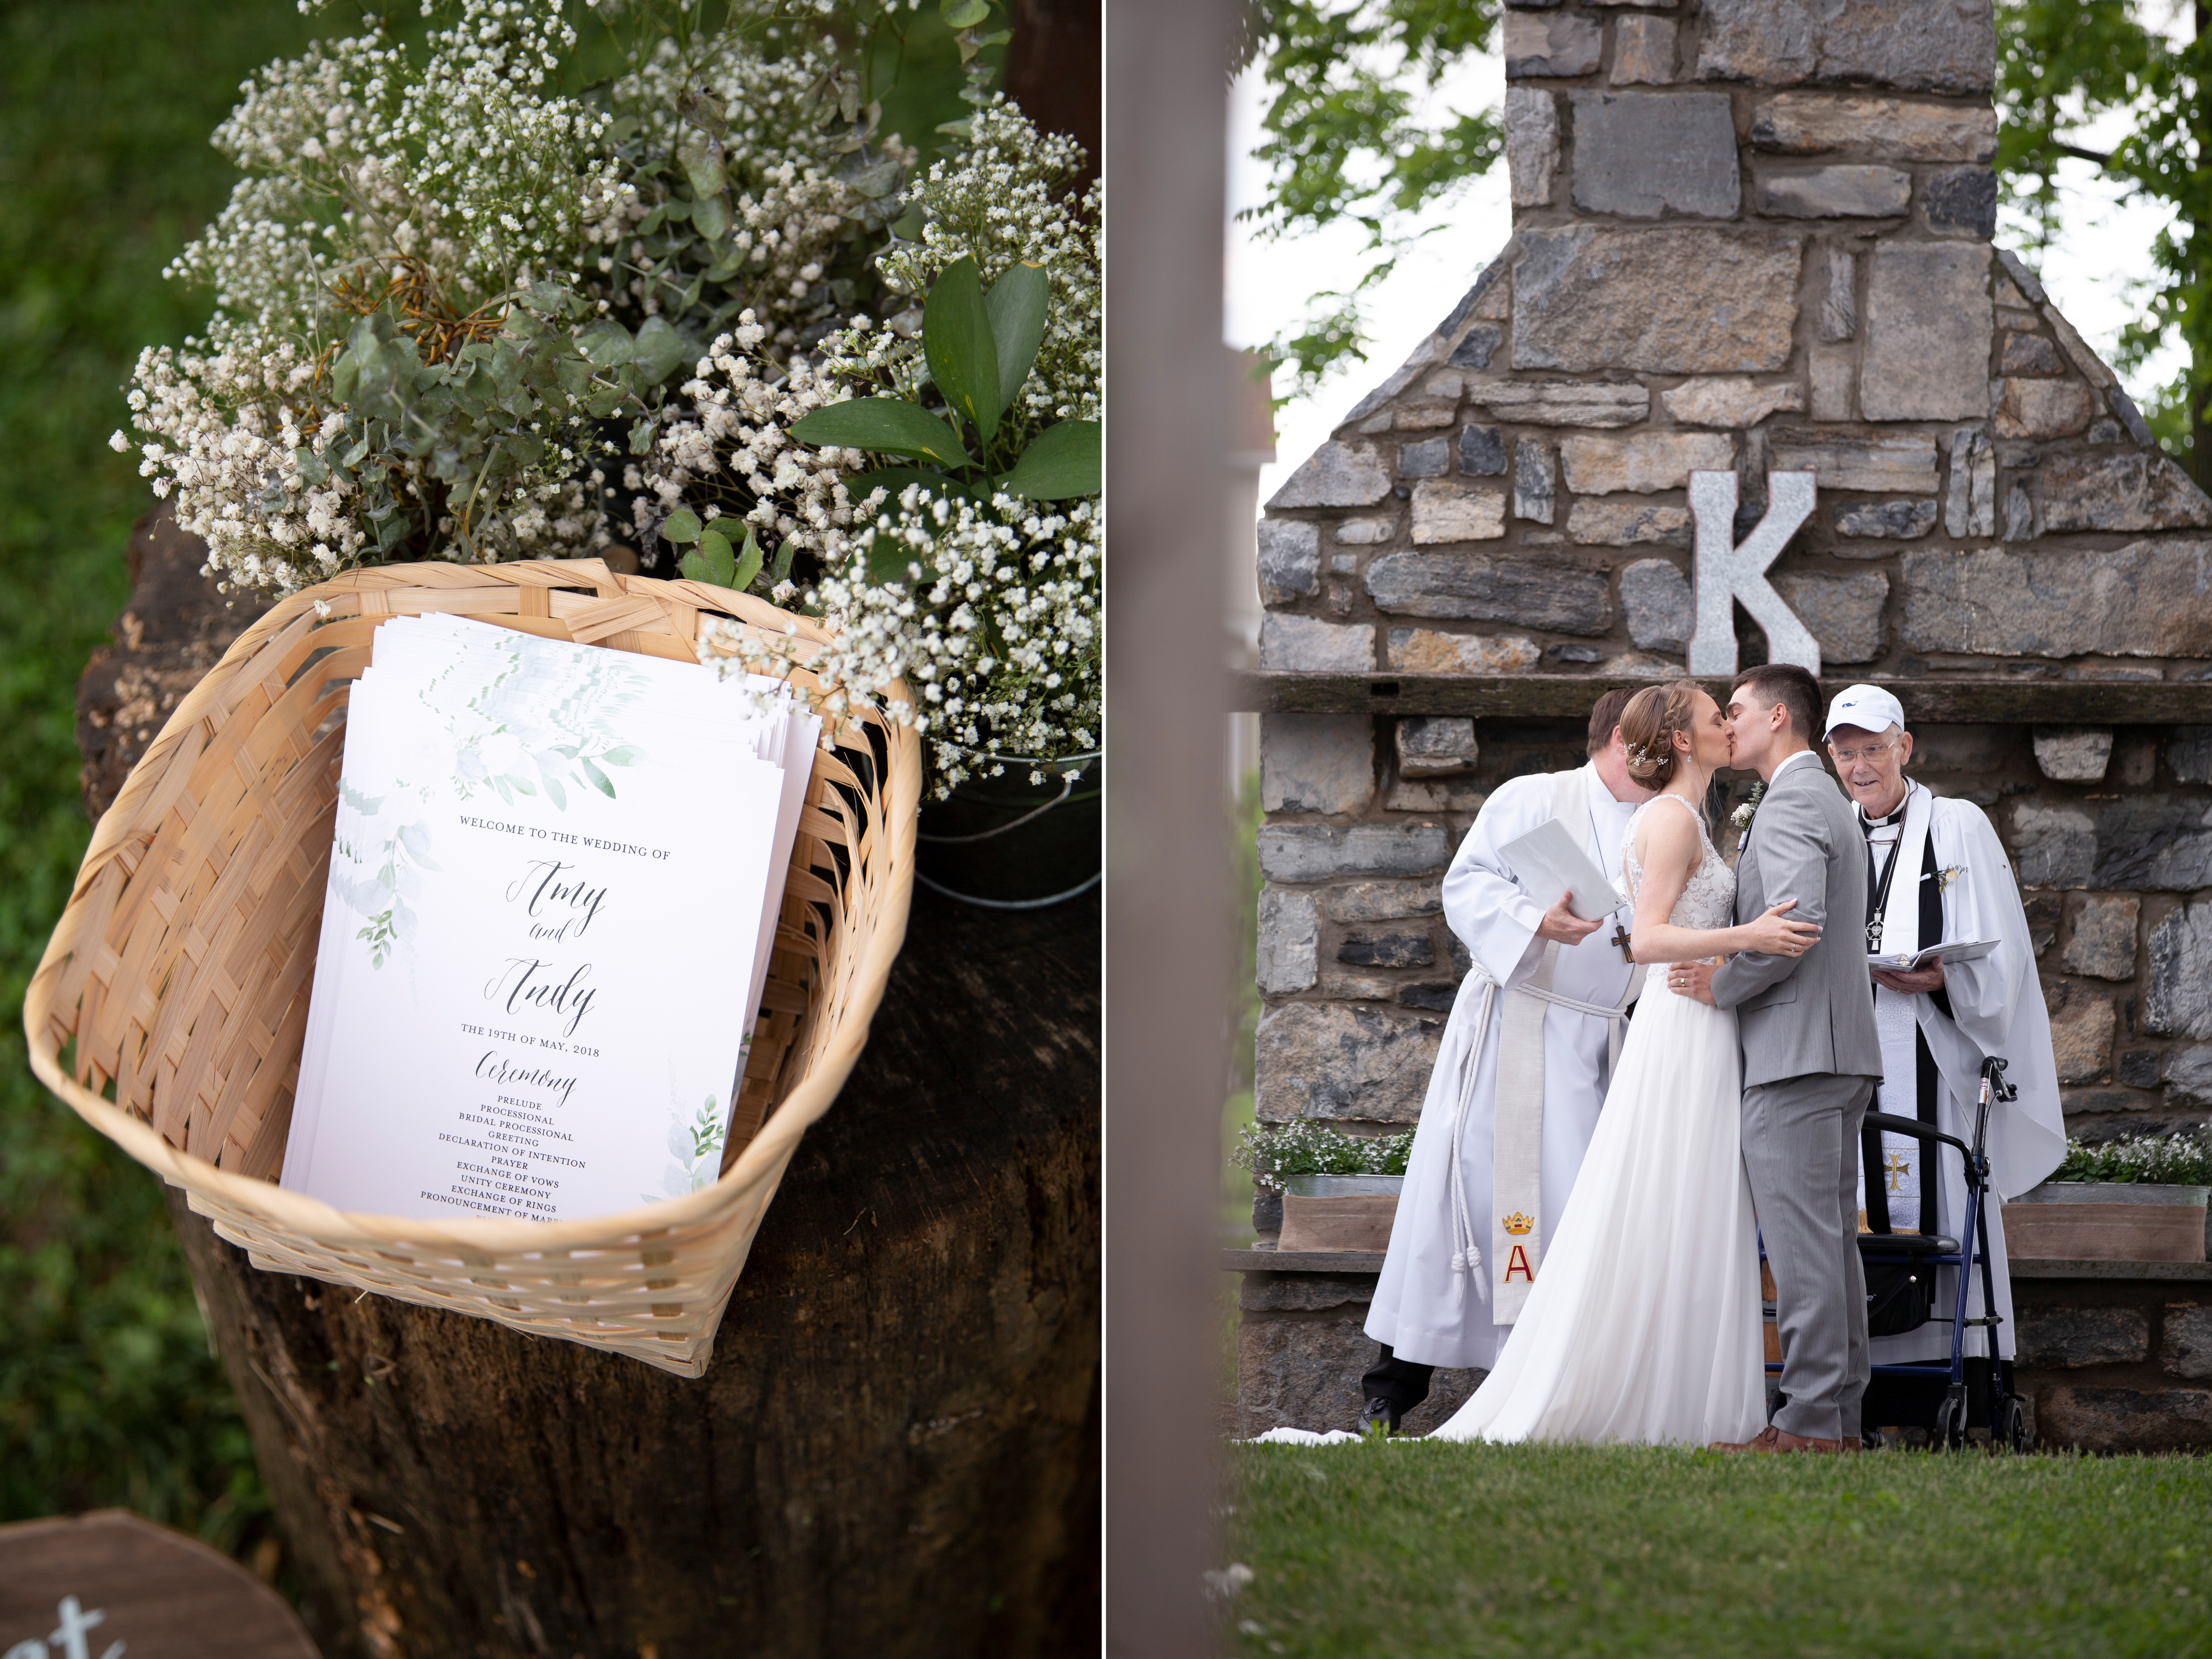 wedding programs in basket